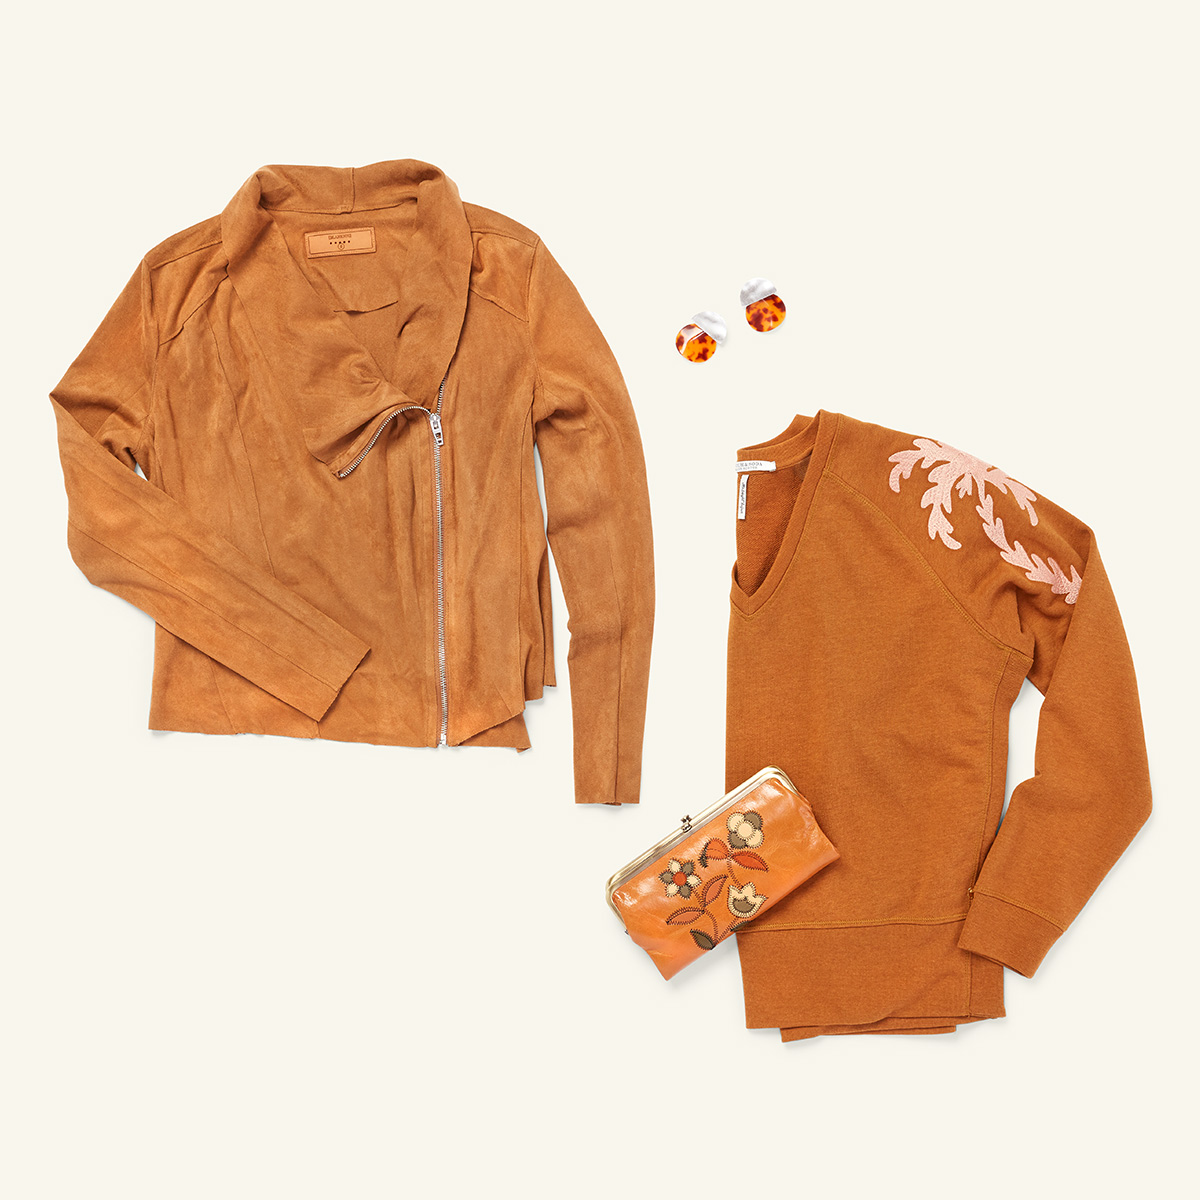 Four items of women's clothing - a faux suede jacket, a pair of tortoise shell earrings, a v-neck sweater and a brown leather clutch - laid flat on a white background.